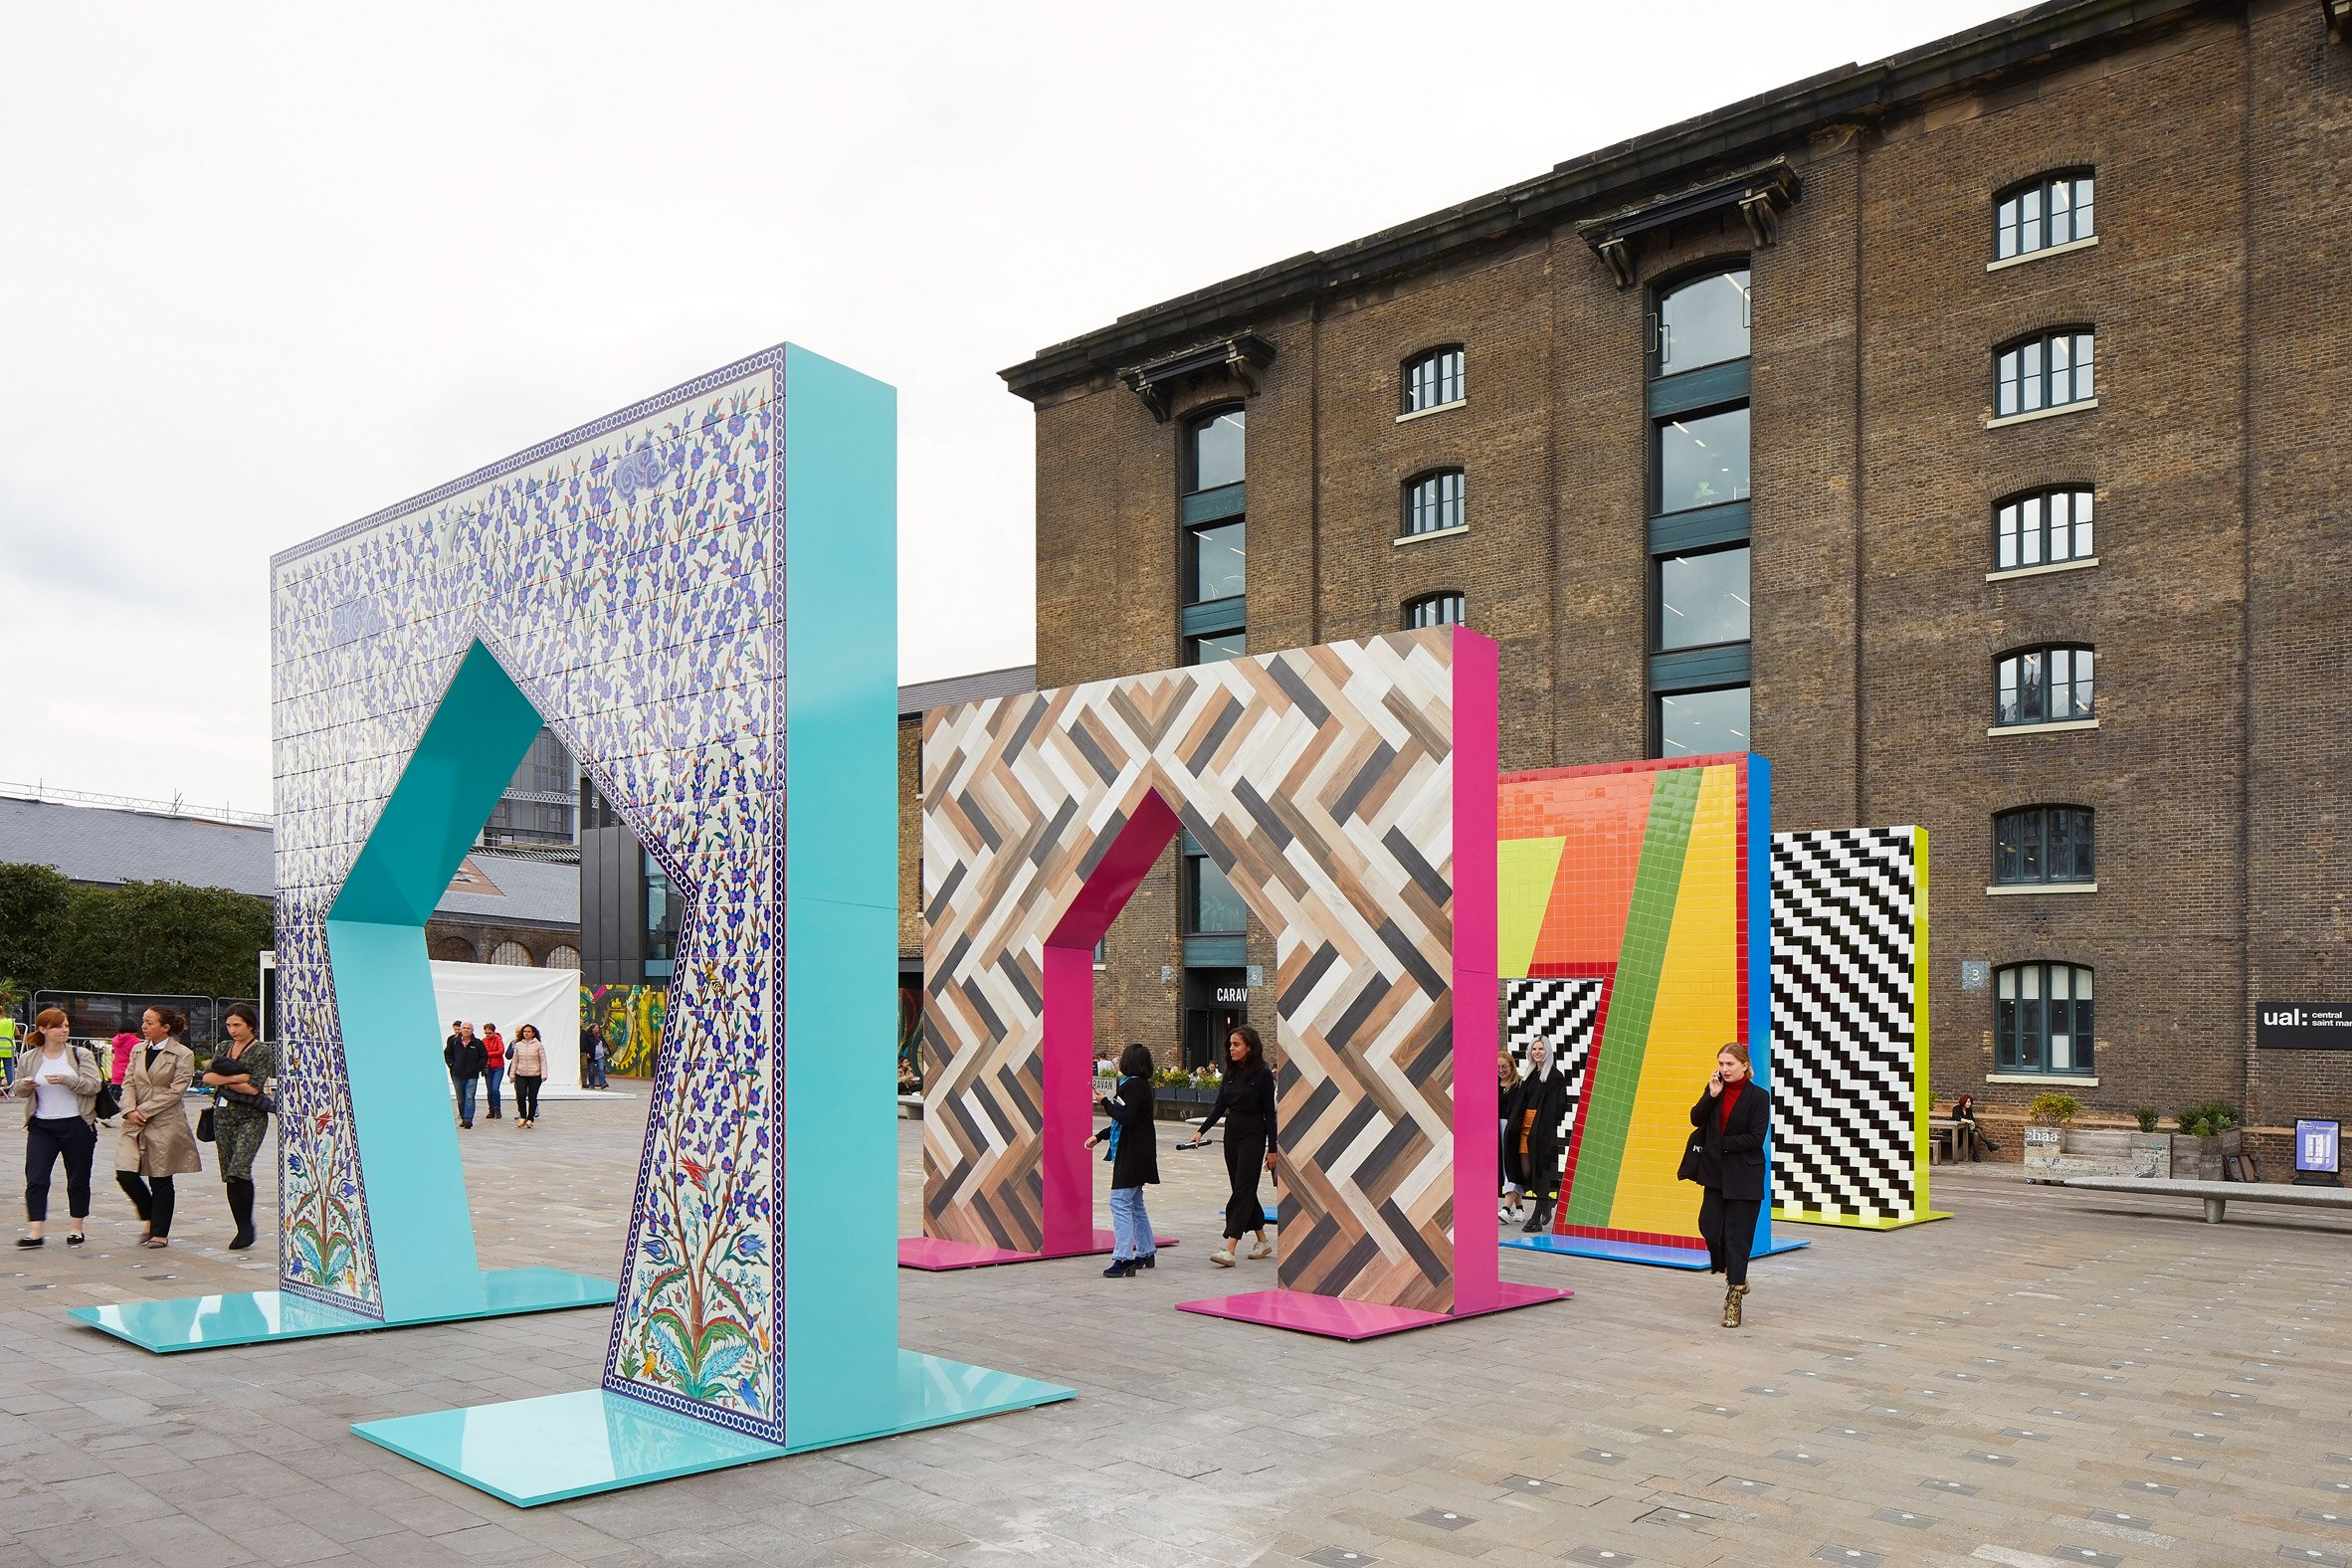 Adam Nathaniel Furman creates sequence of tiled archways at London Design Festival